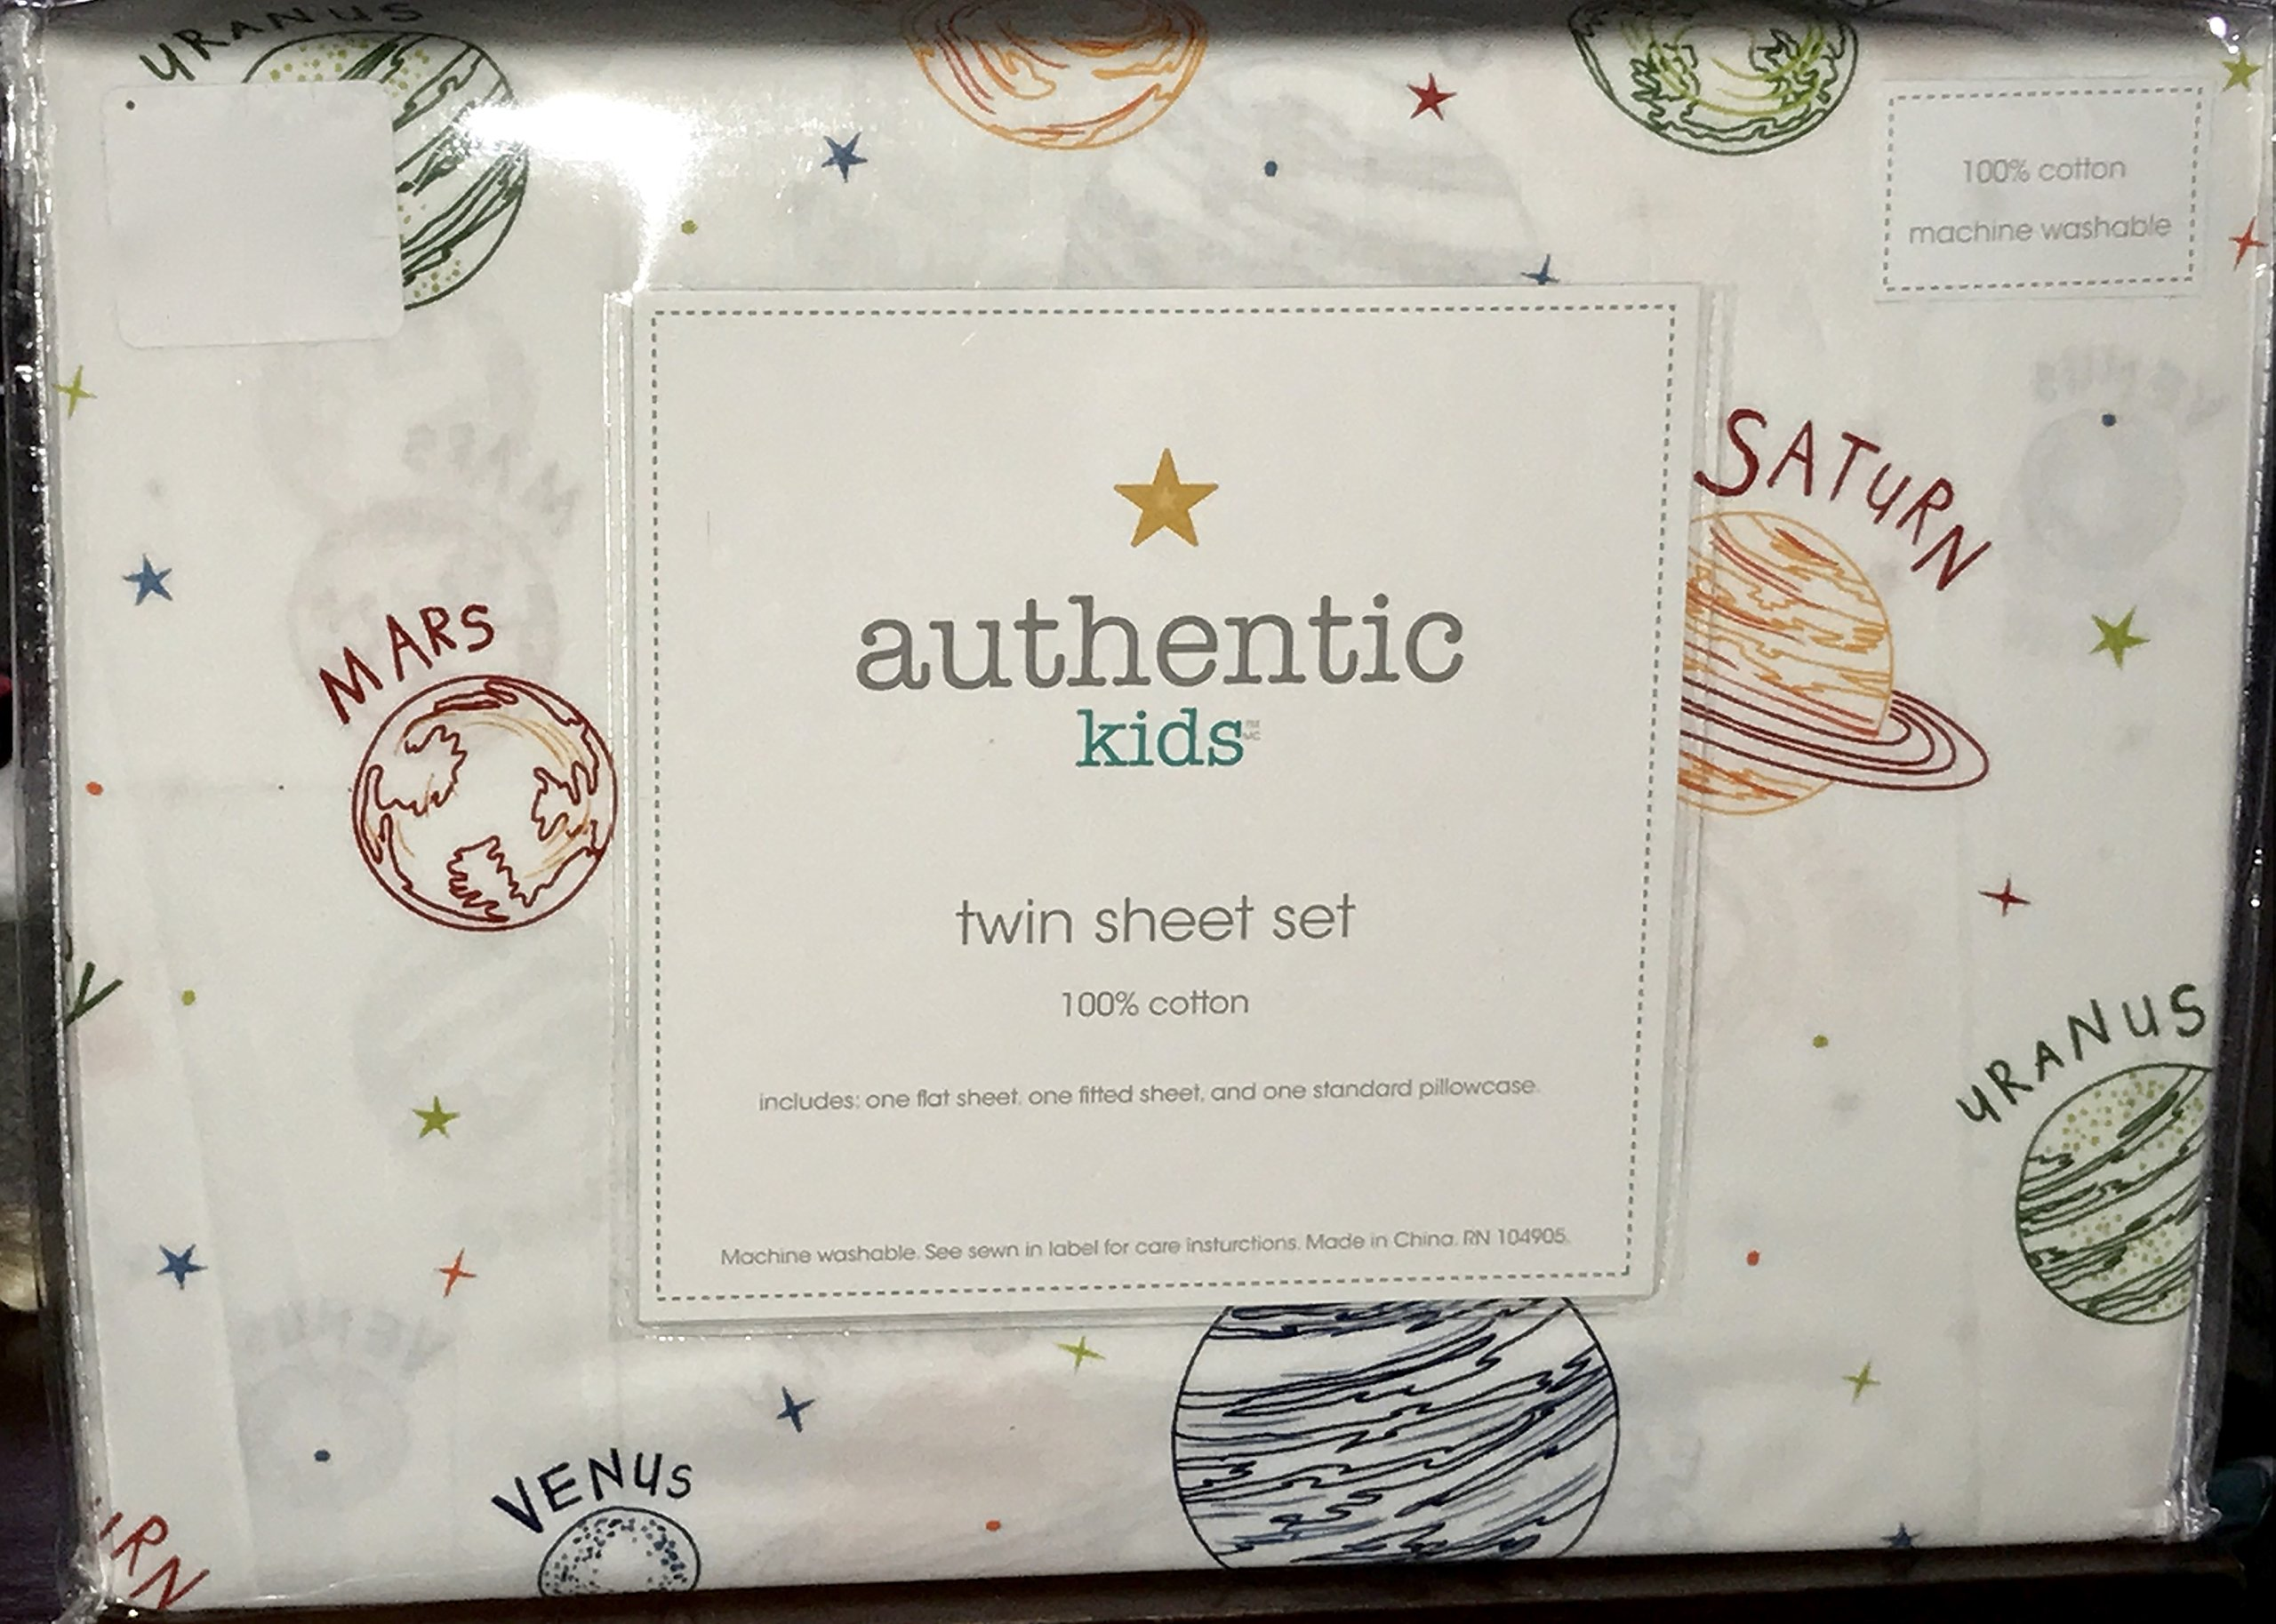 TWIN SIZE (ALL COTTON) 3-pc PLANETS / SOLAR SYSTEM Sheet Set (authentic kids)